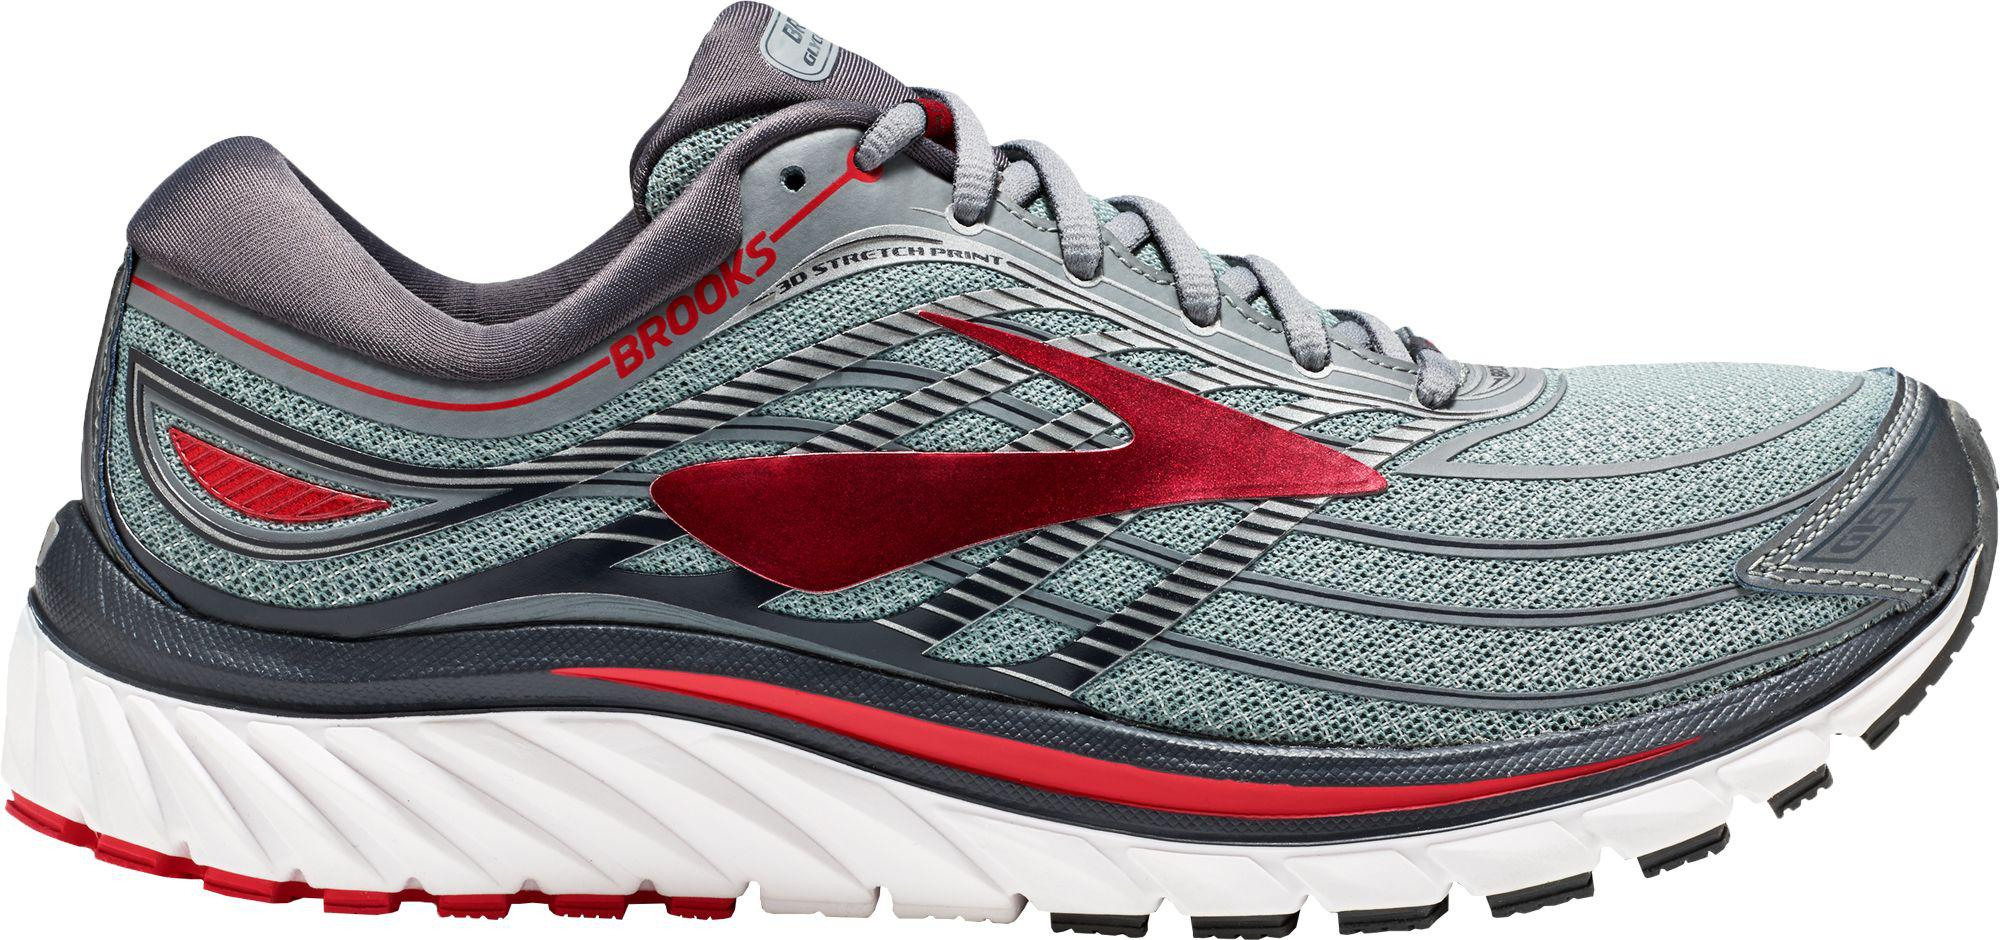 de9248d87a3 Lyst - Brooks Glycerin 15 Running Shoes in Gray for Men